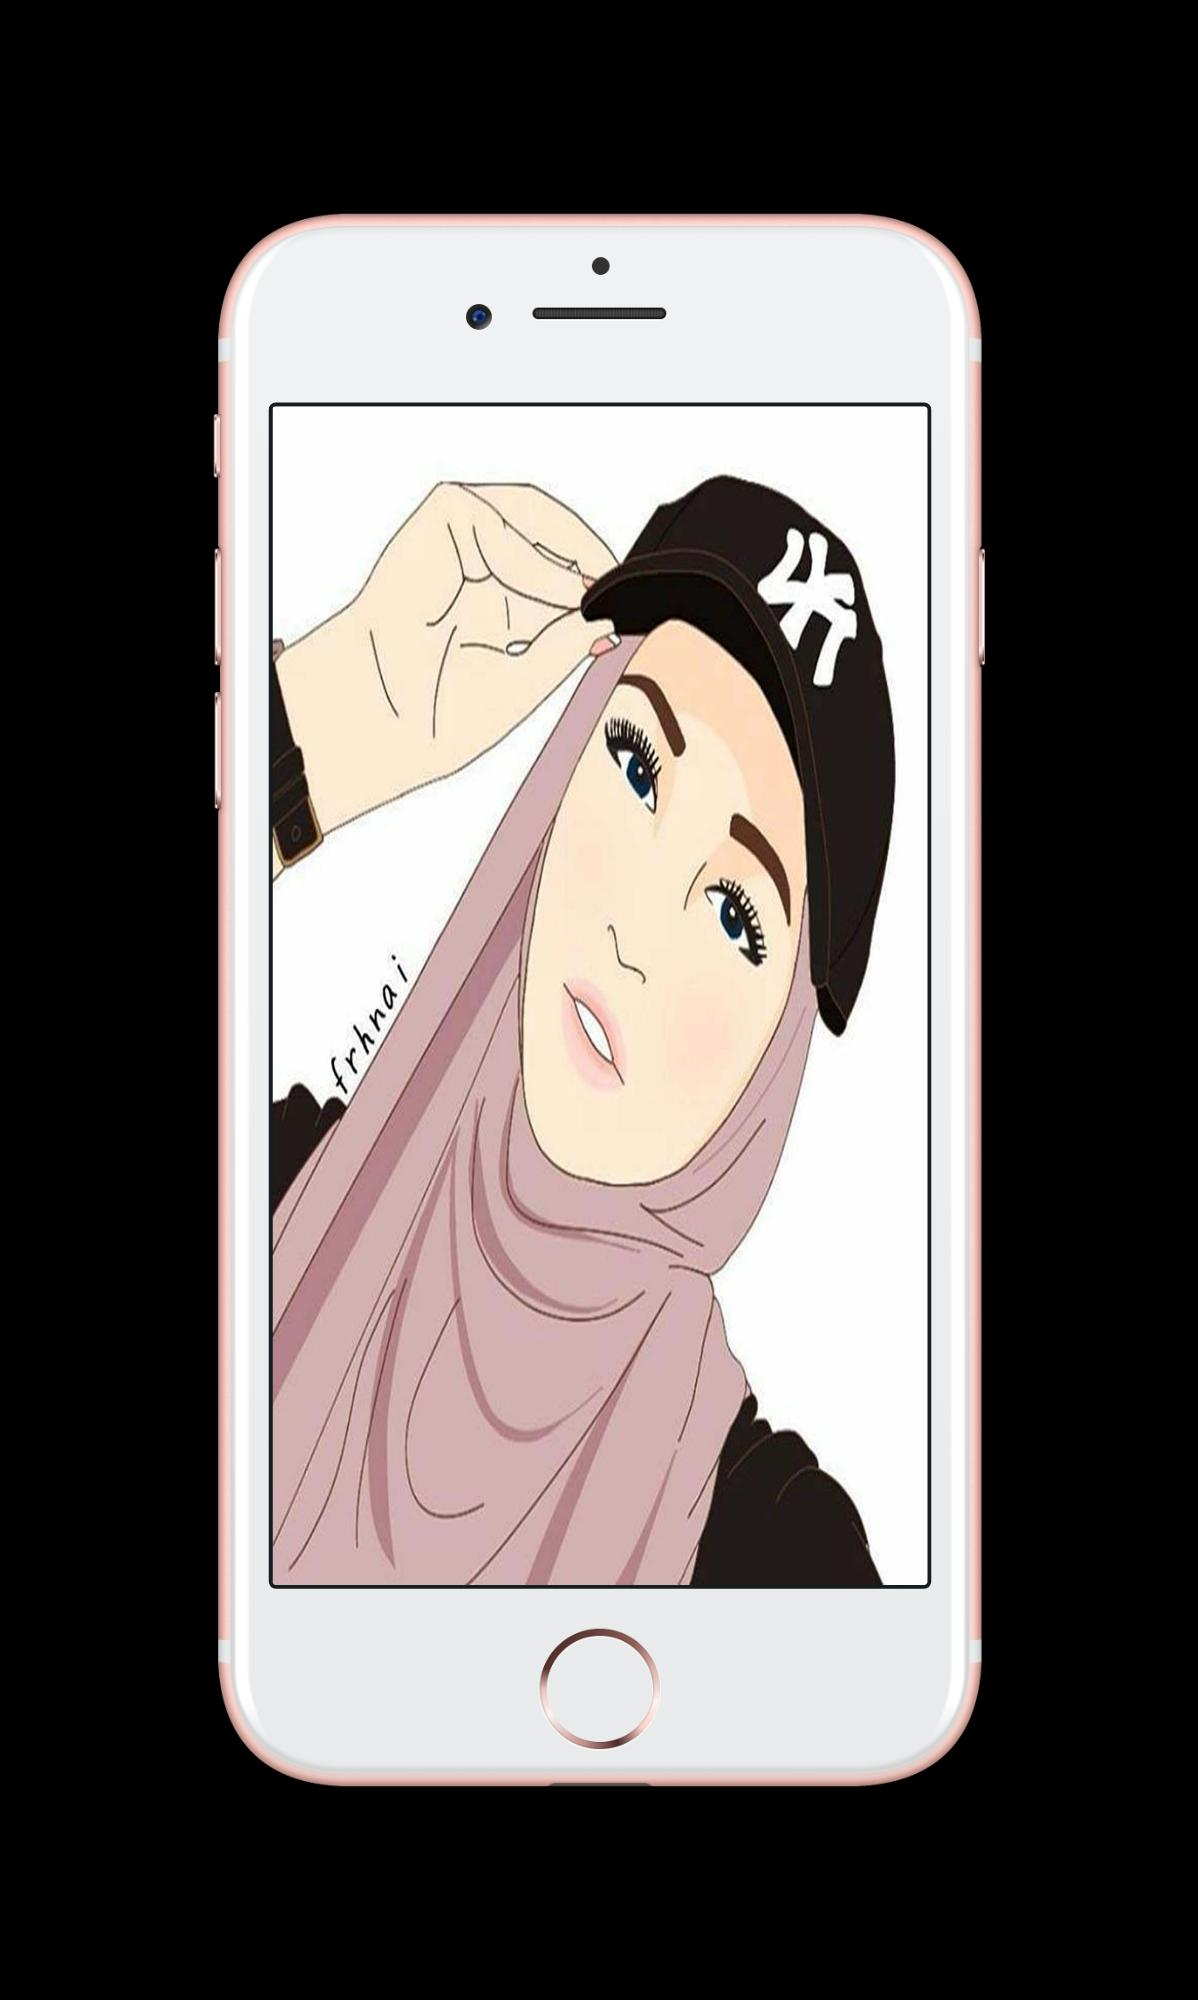 Hijab Cartoon Wallpaper For Android APK Download